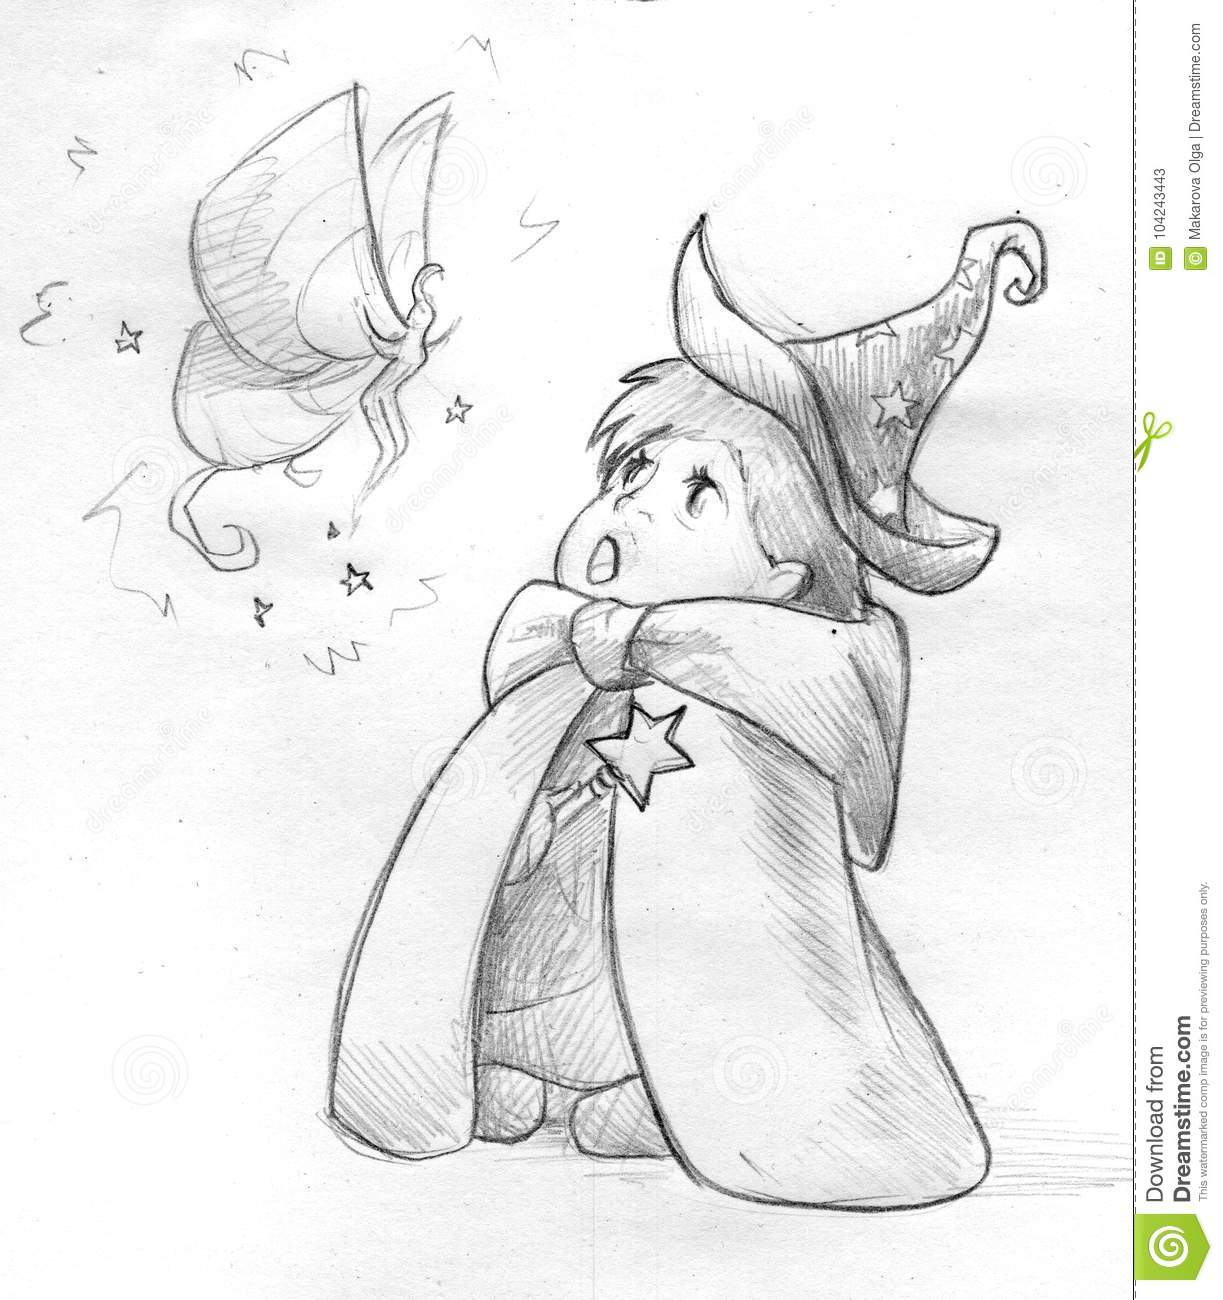 Hand drawn pencil sketch of a little child wearing wizard hat and robe and holding a wand he she is staring in awe at a little fairy in front of them